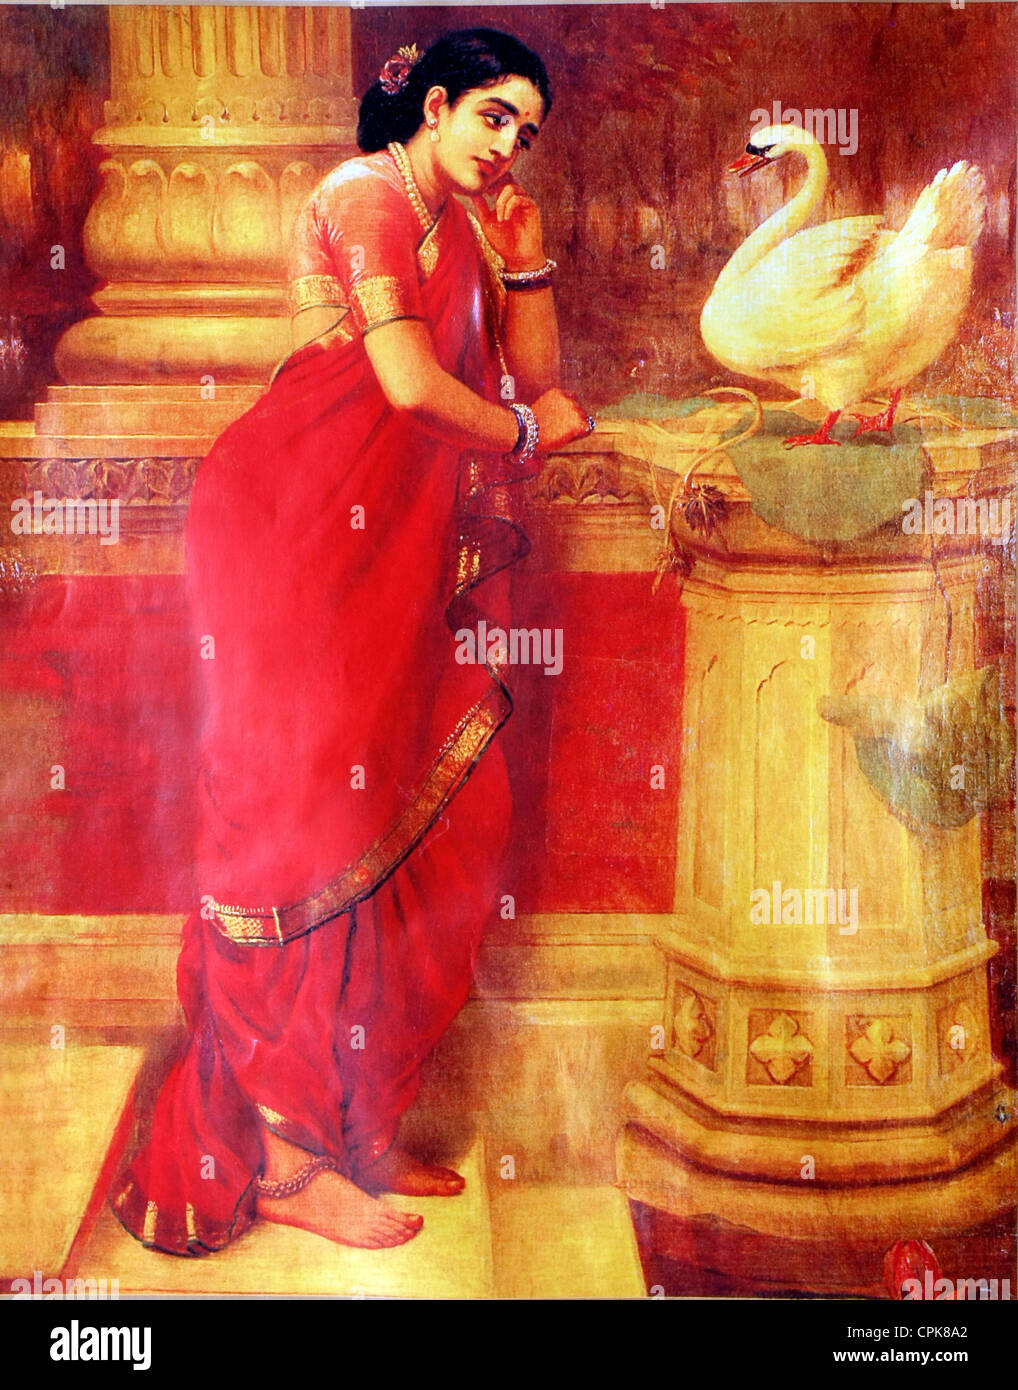 Best paintings of raja ravi varma 178 best raja ravivarma.